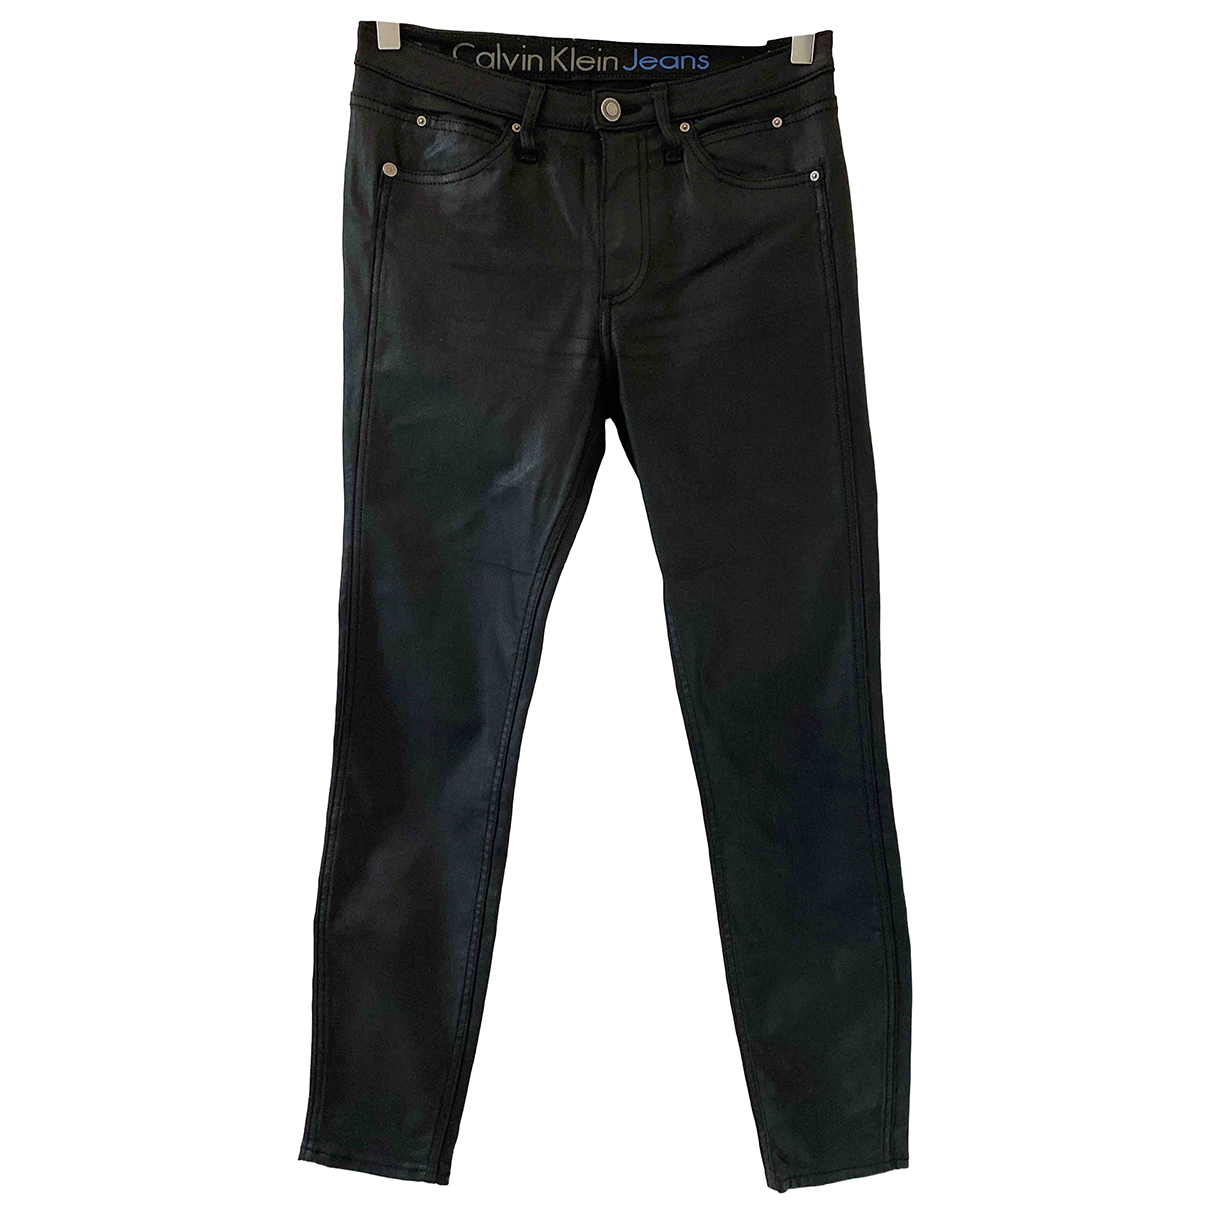 Calvin Klein N Black Denim - Jeans Jeans for Women 29 US